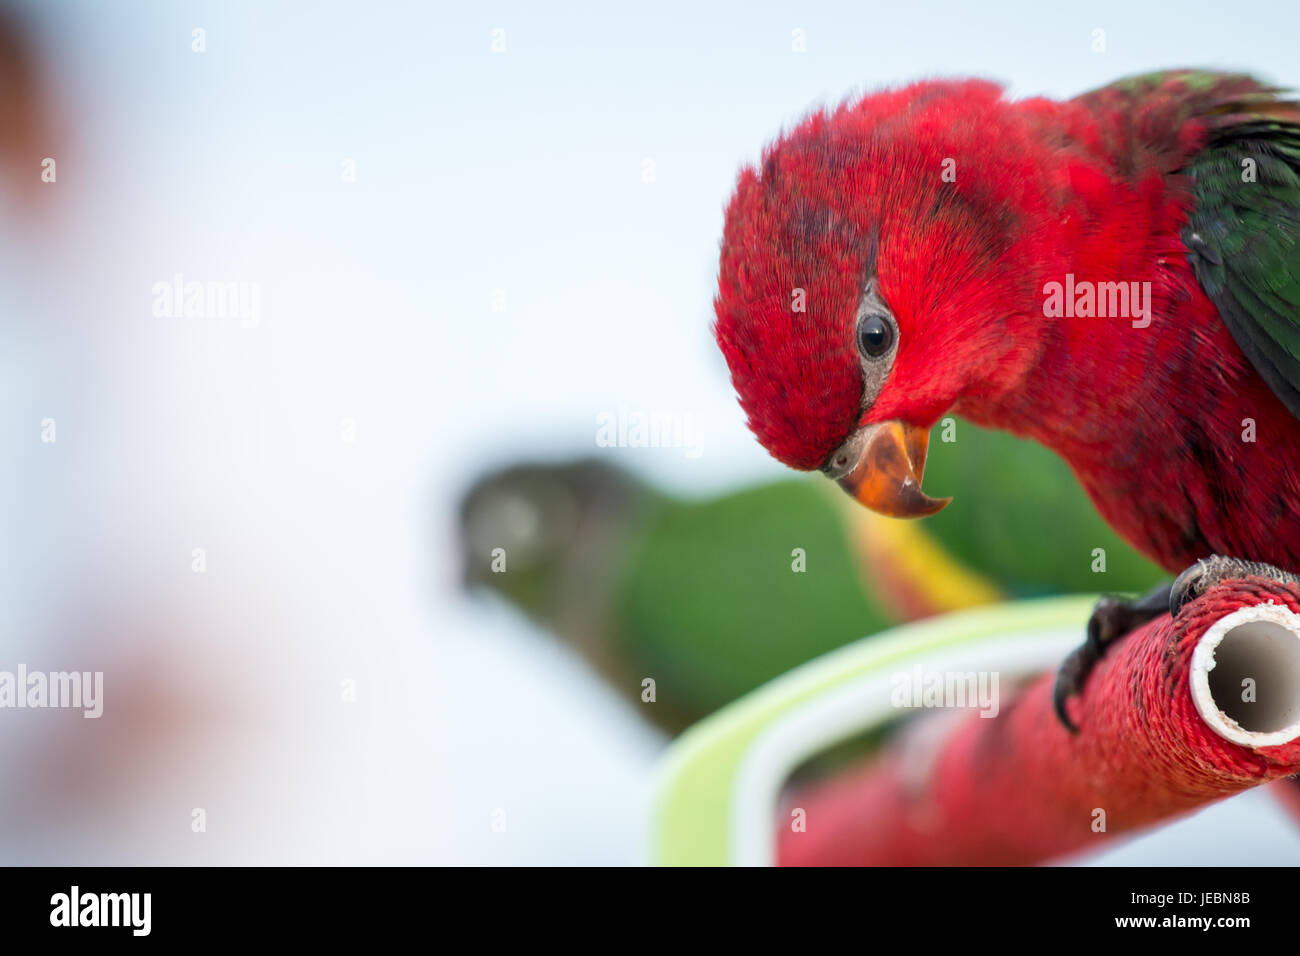 Sun conure Parrot on nature background in the evening. - Stock Image